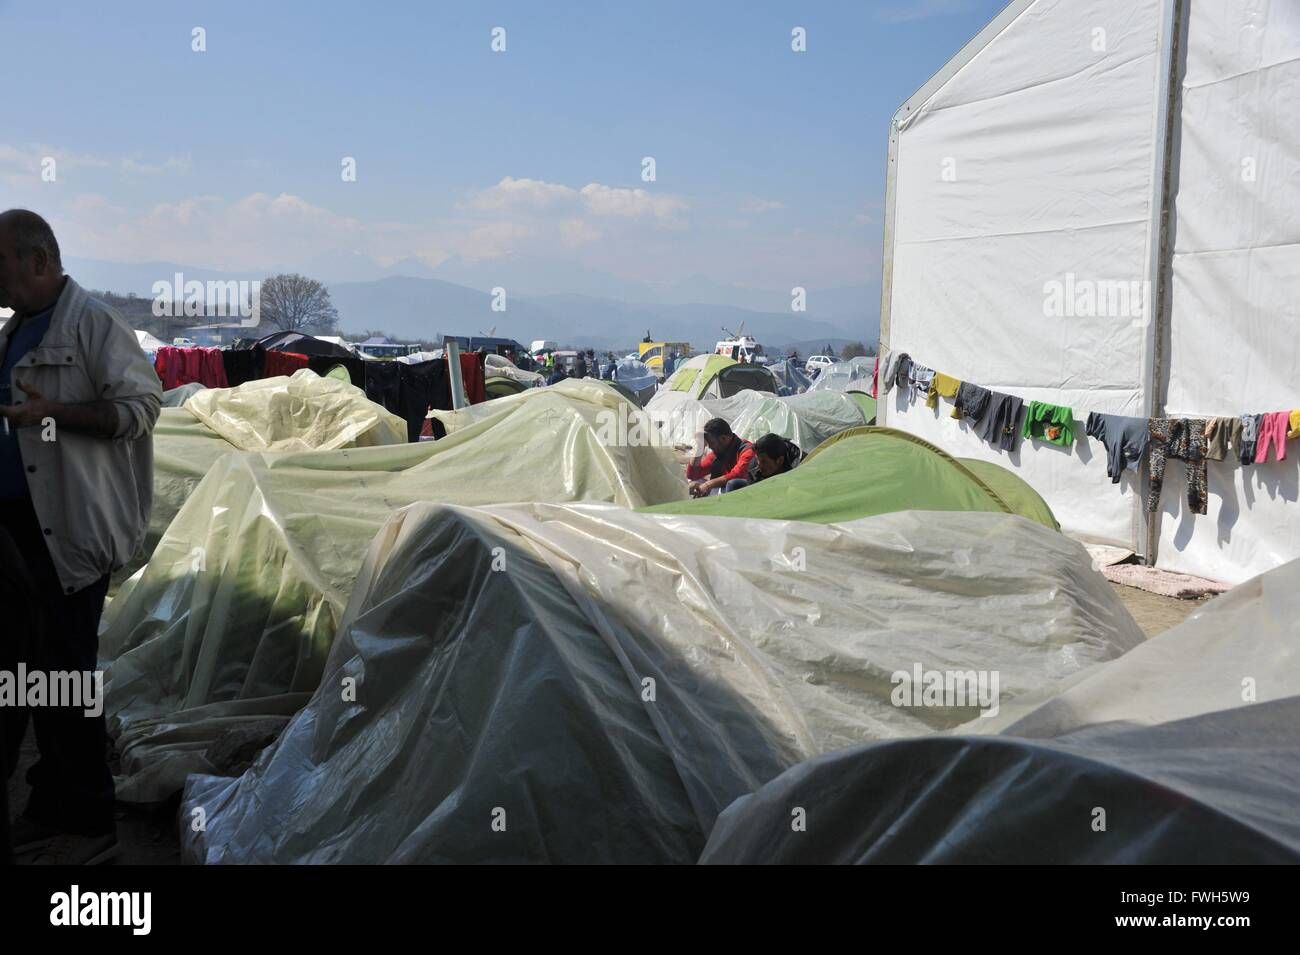 For weeks rain in Idomeni. Some tents are still protected by tarpaulins. - 29 March 2016 - Stock Image